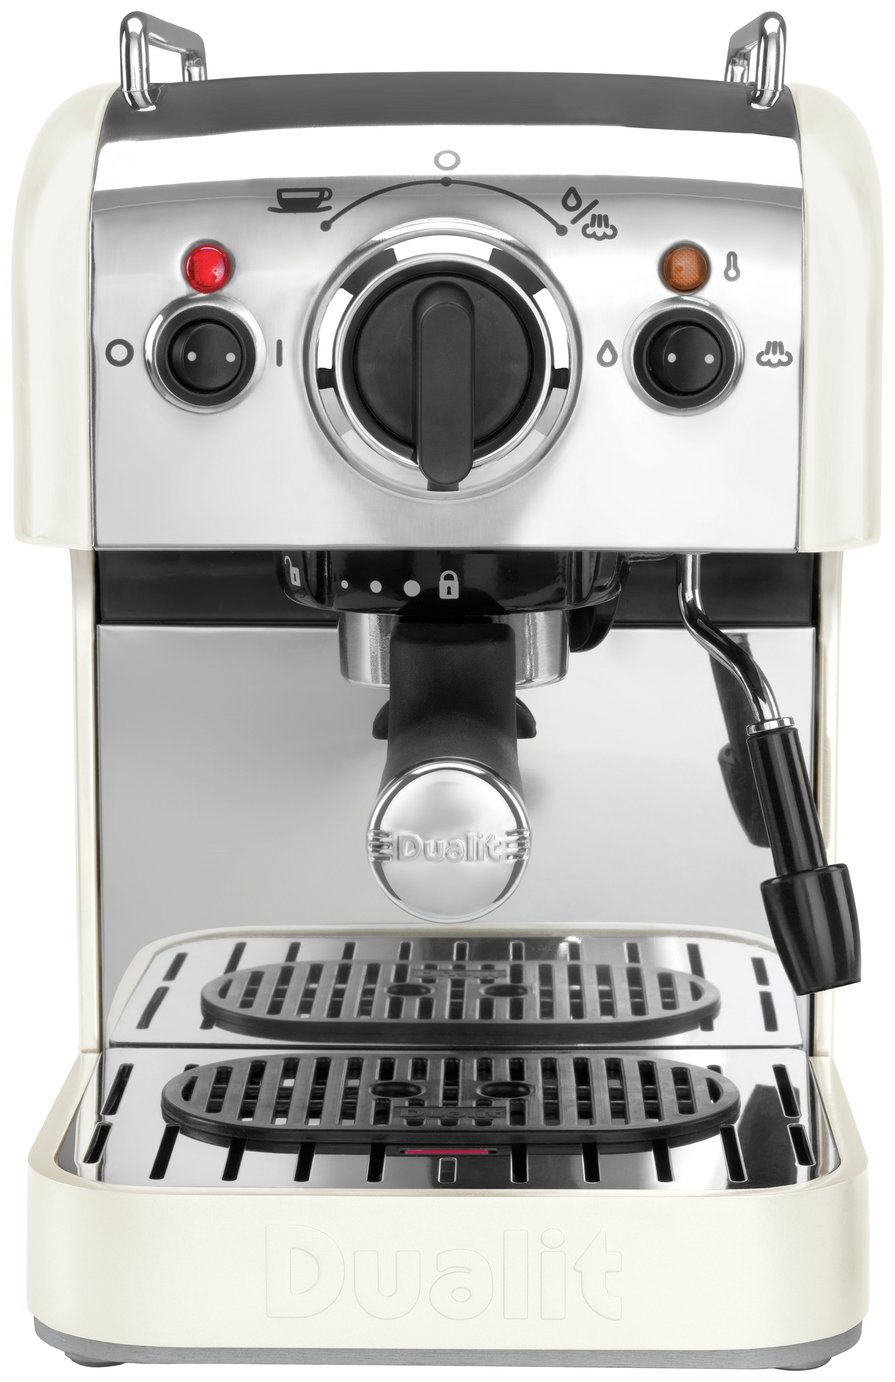 Image of Dualit 3 in 1 Coffee Machine - Canvas White.